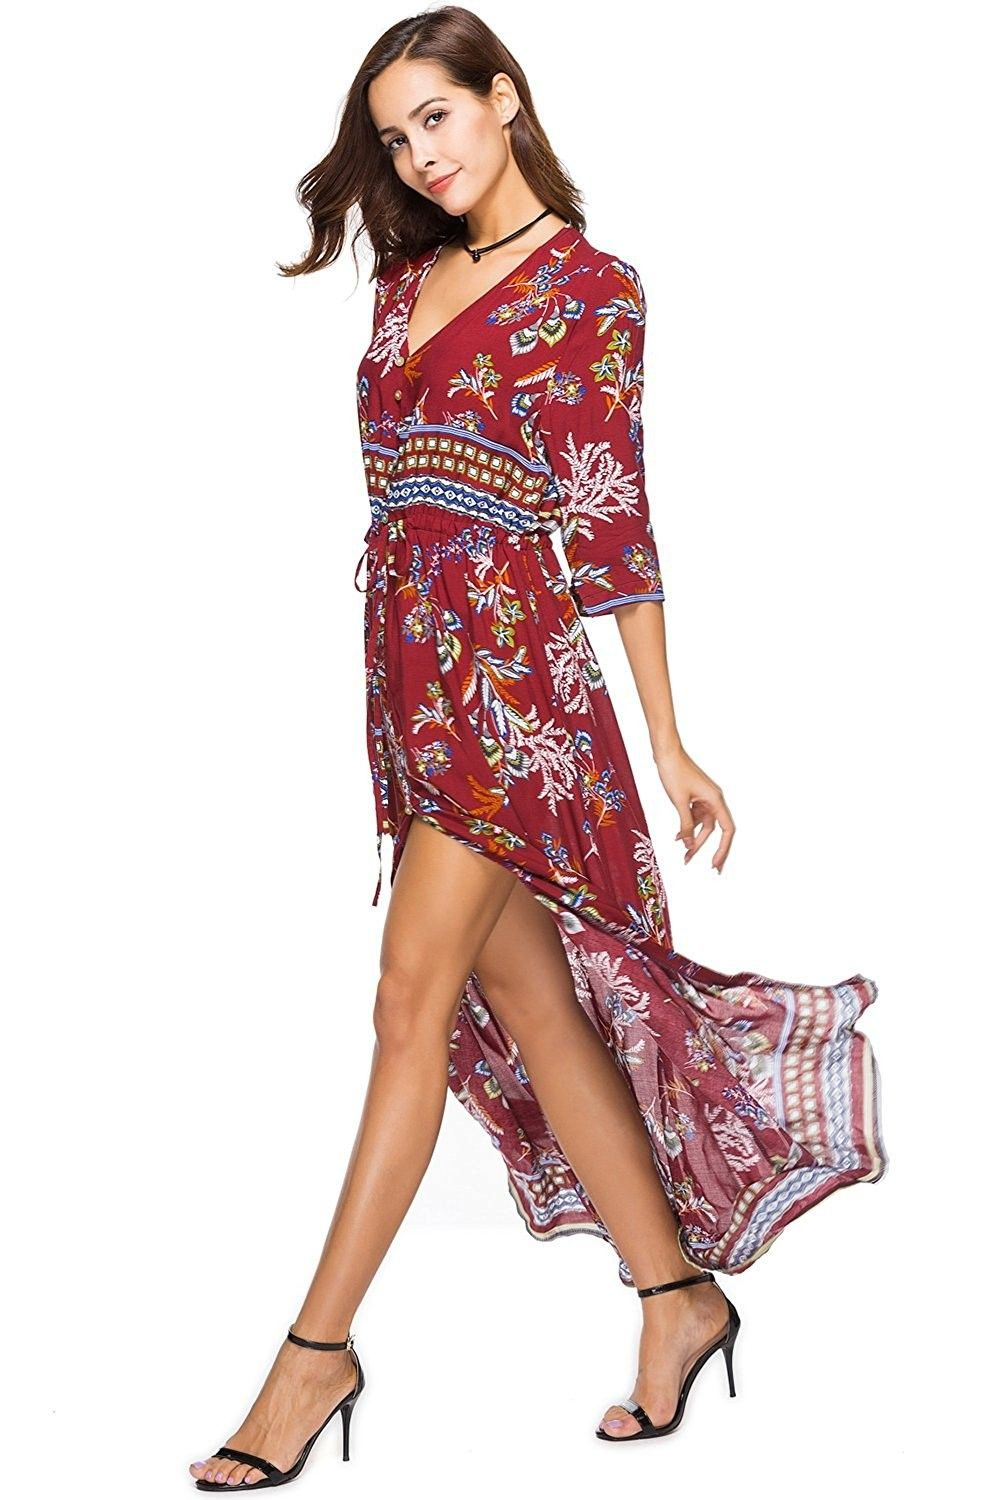 Women S Clothing Swimsuits Cover Ups Board Shorts Floral Print Dress 3 4 Sleeve Draws Summer Dresses For Women Vintage Summer Dresses Maxi Dresses Casual [ 1500 x 1000 Pixel ]